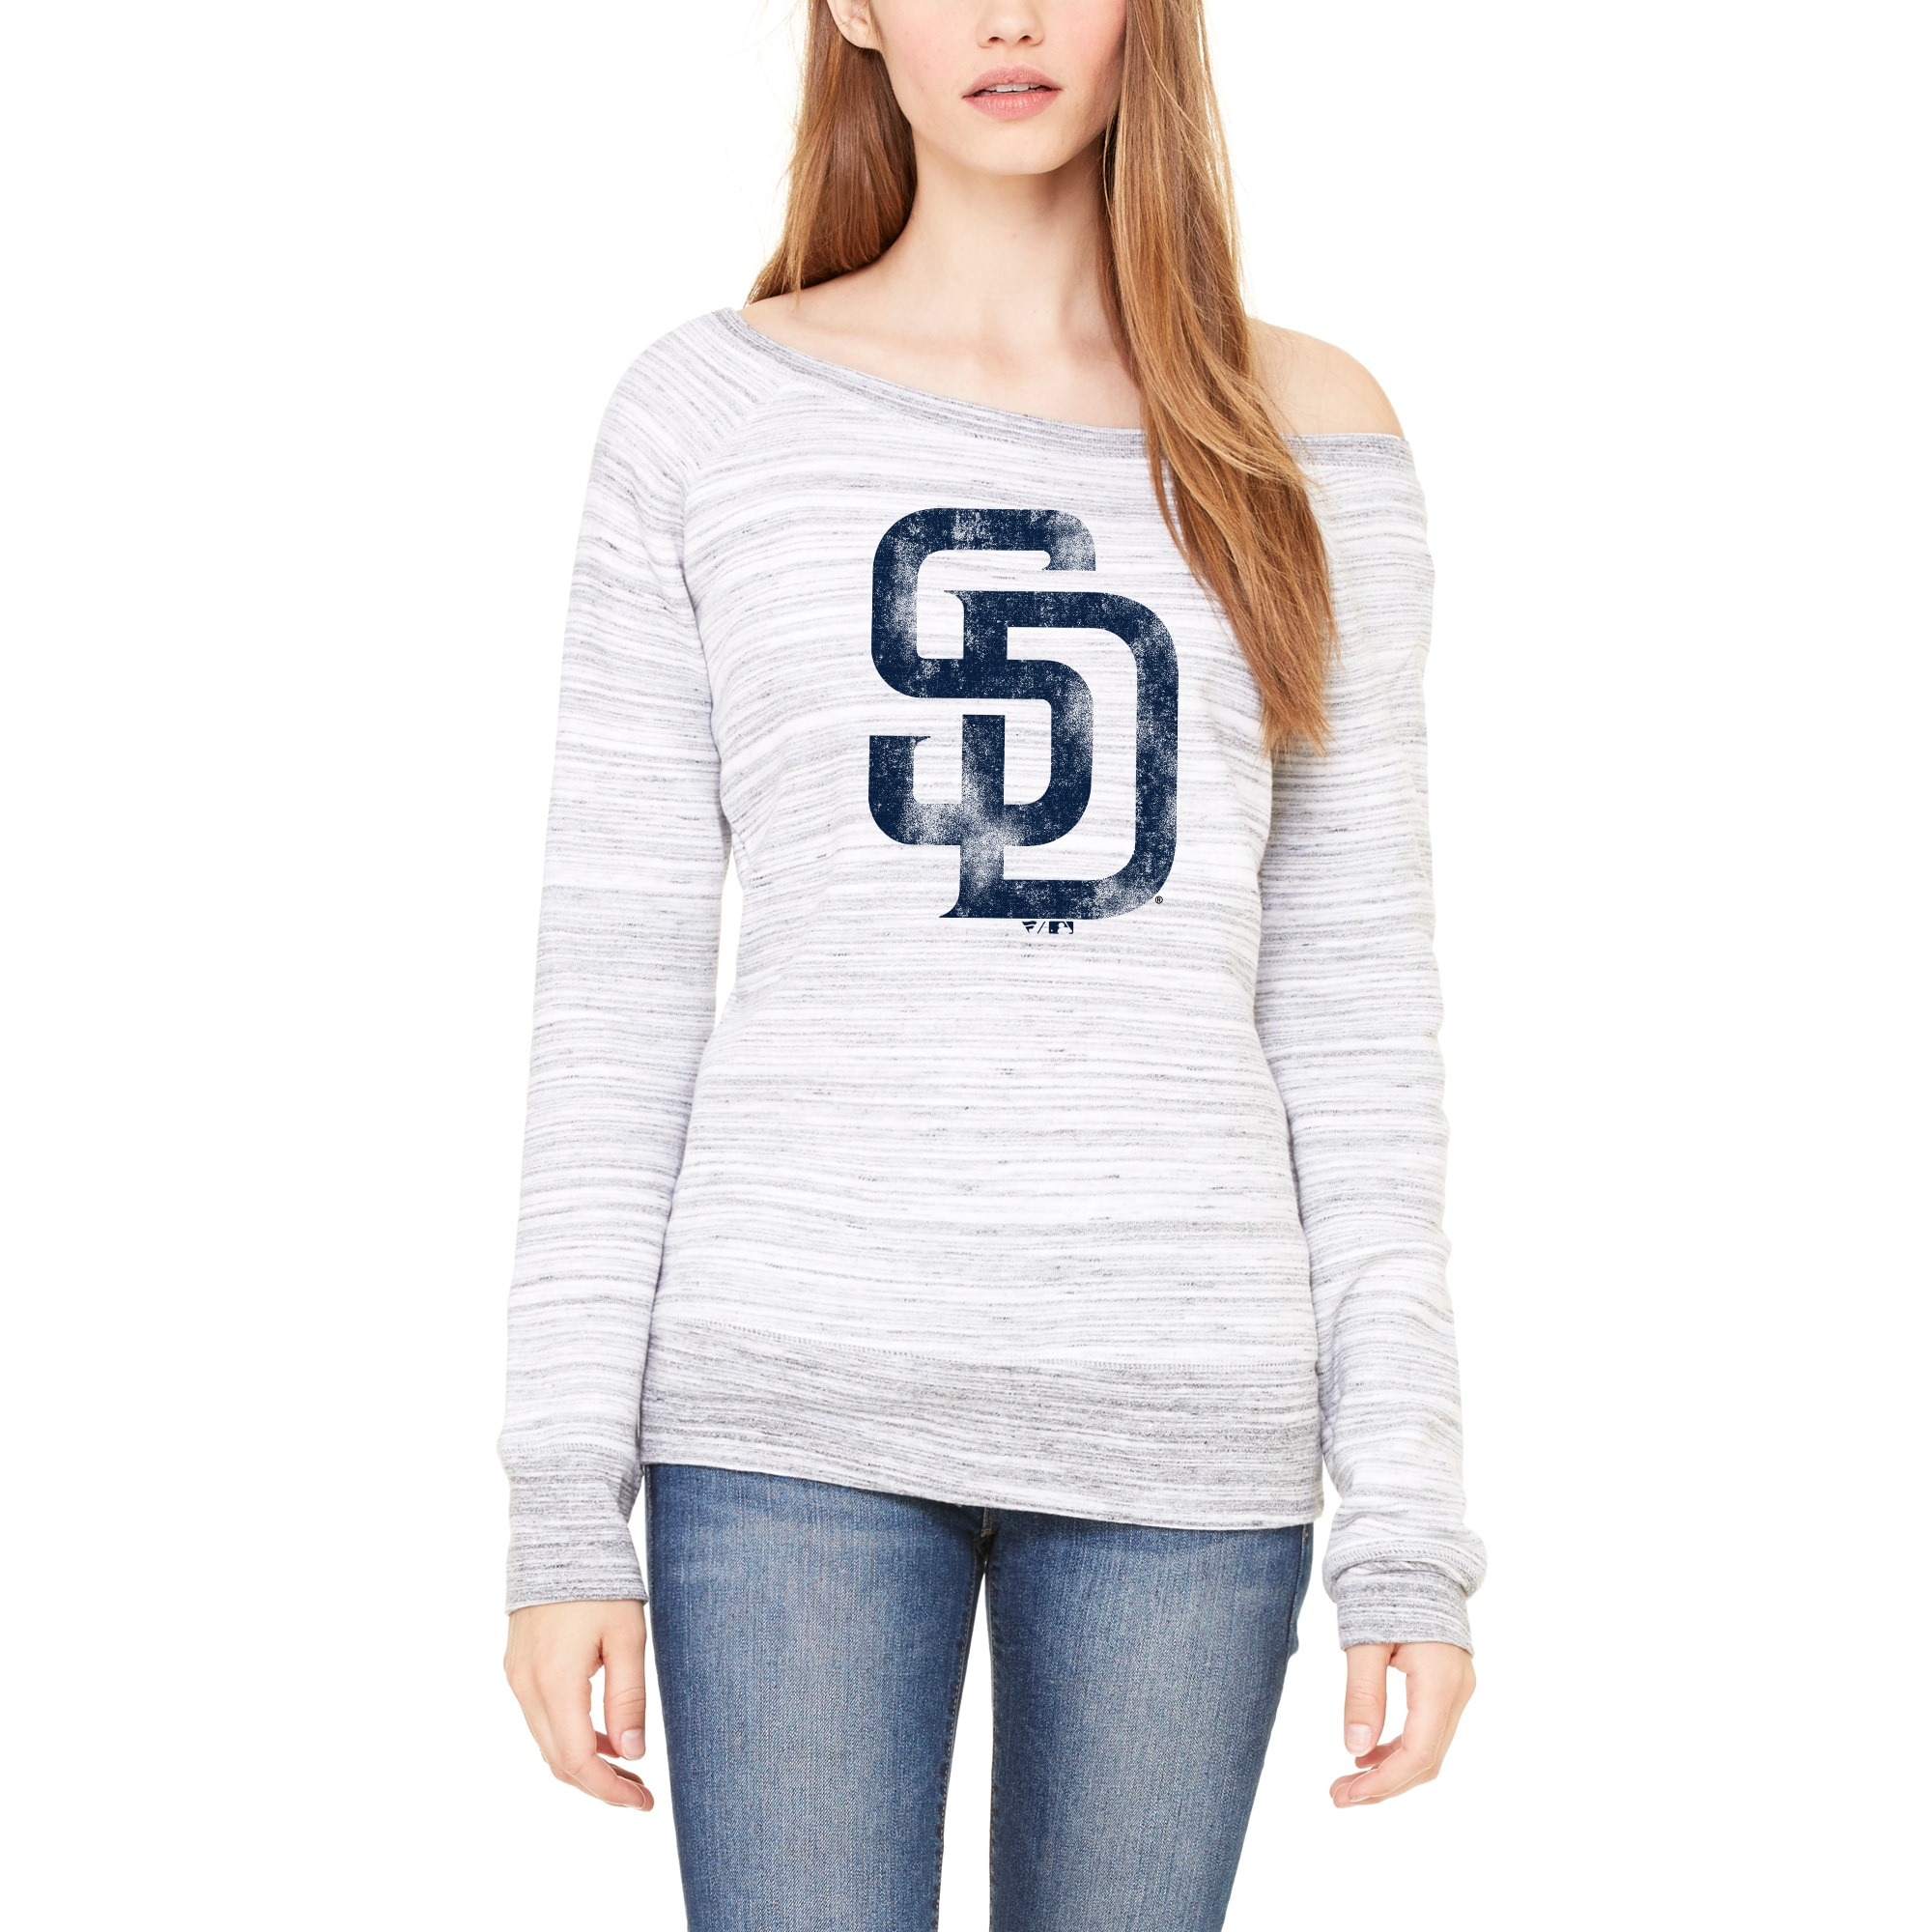 San Diego Padres Let Loose by RNL Women's Game Day Wide Neck Sweatshirt - Light Gray Marble